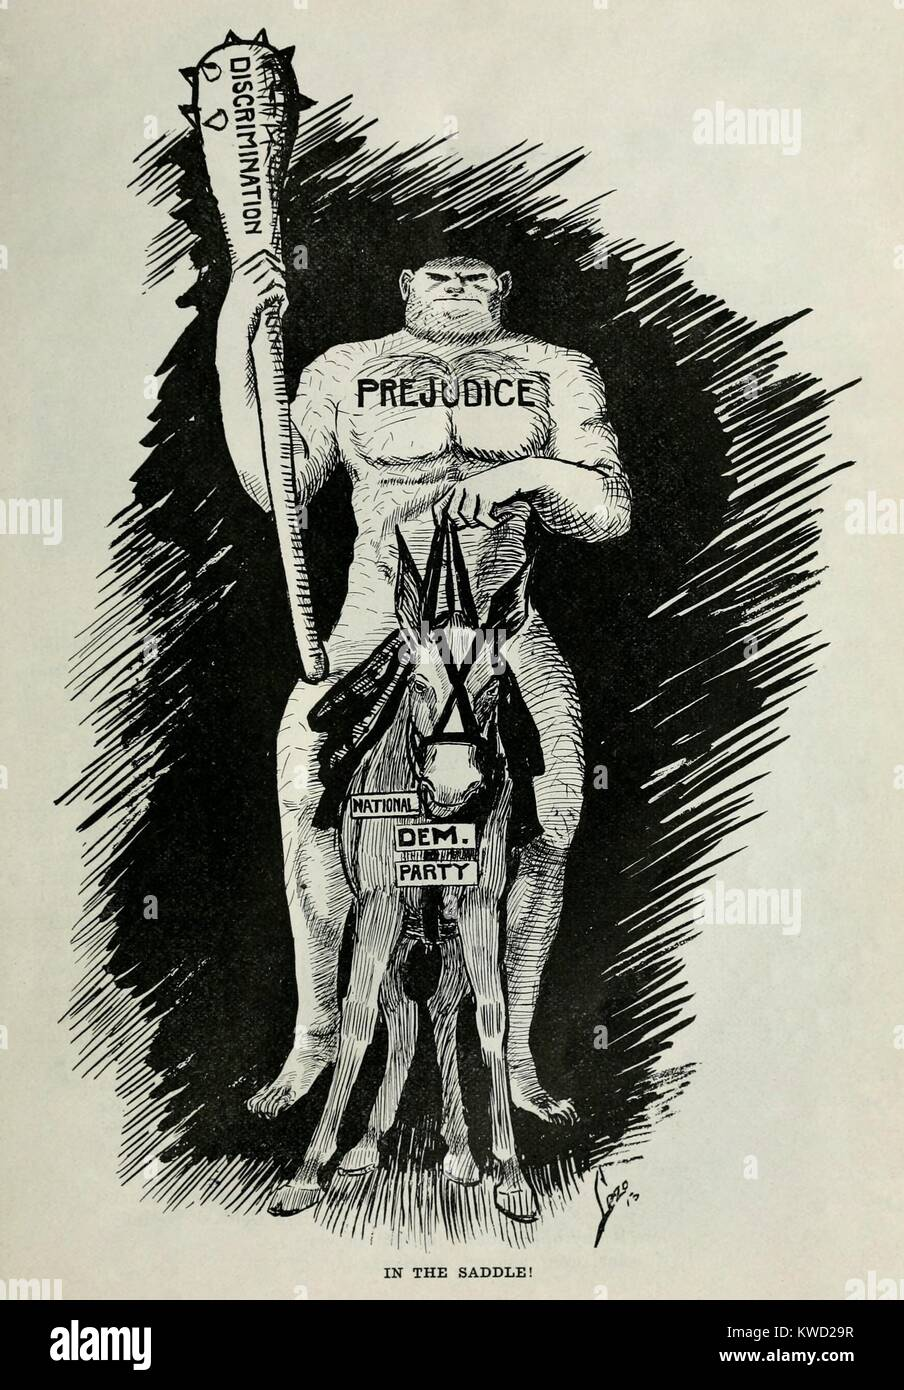 Anti-Democratic Party political cartoon from THE CRISIS, 1910. A brutish figure mounted on a donkey symbolizing - Stock Image